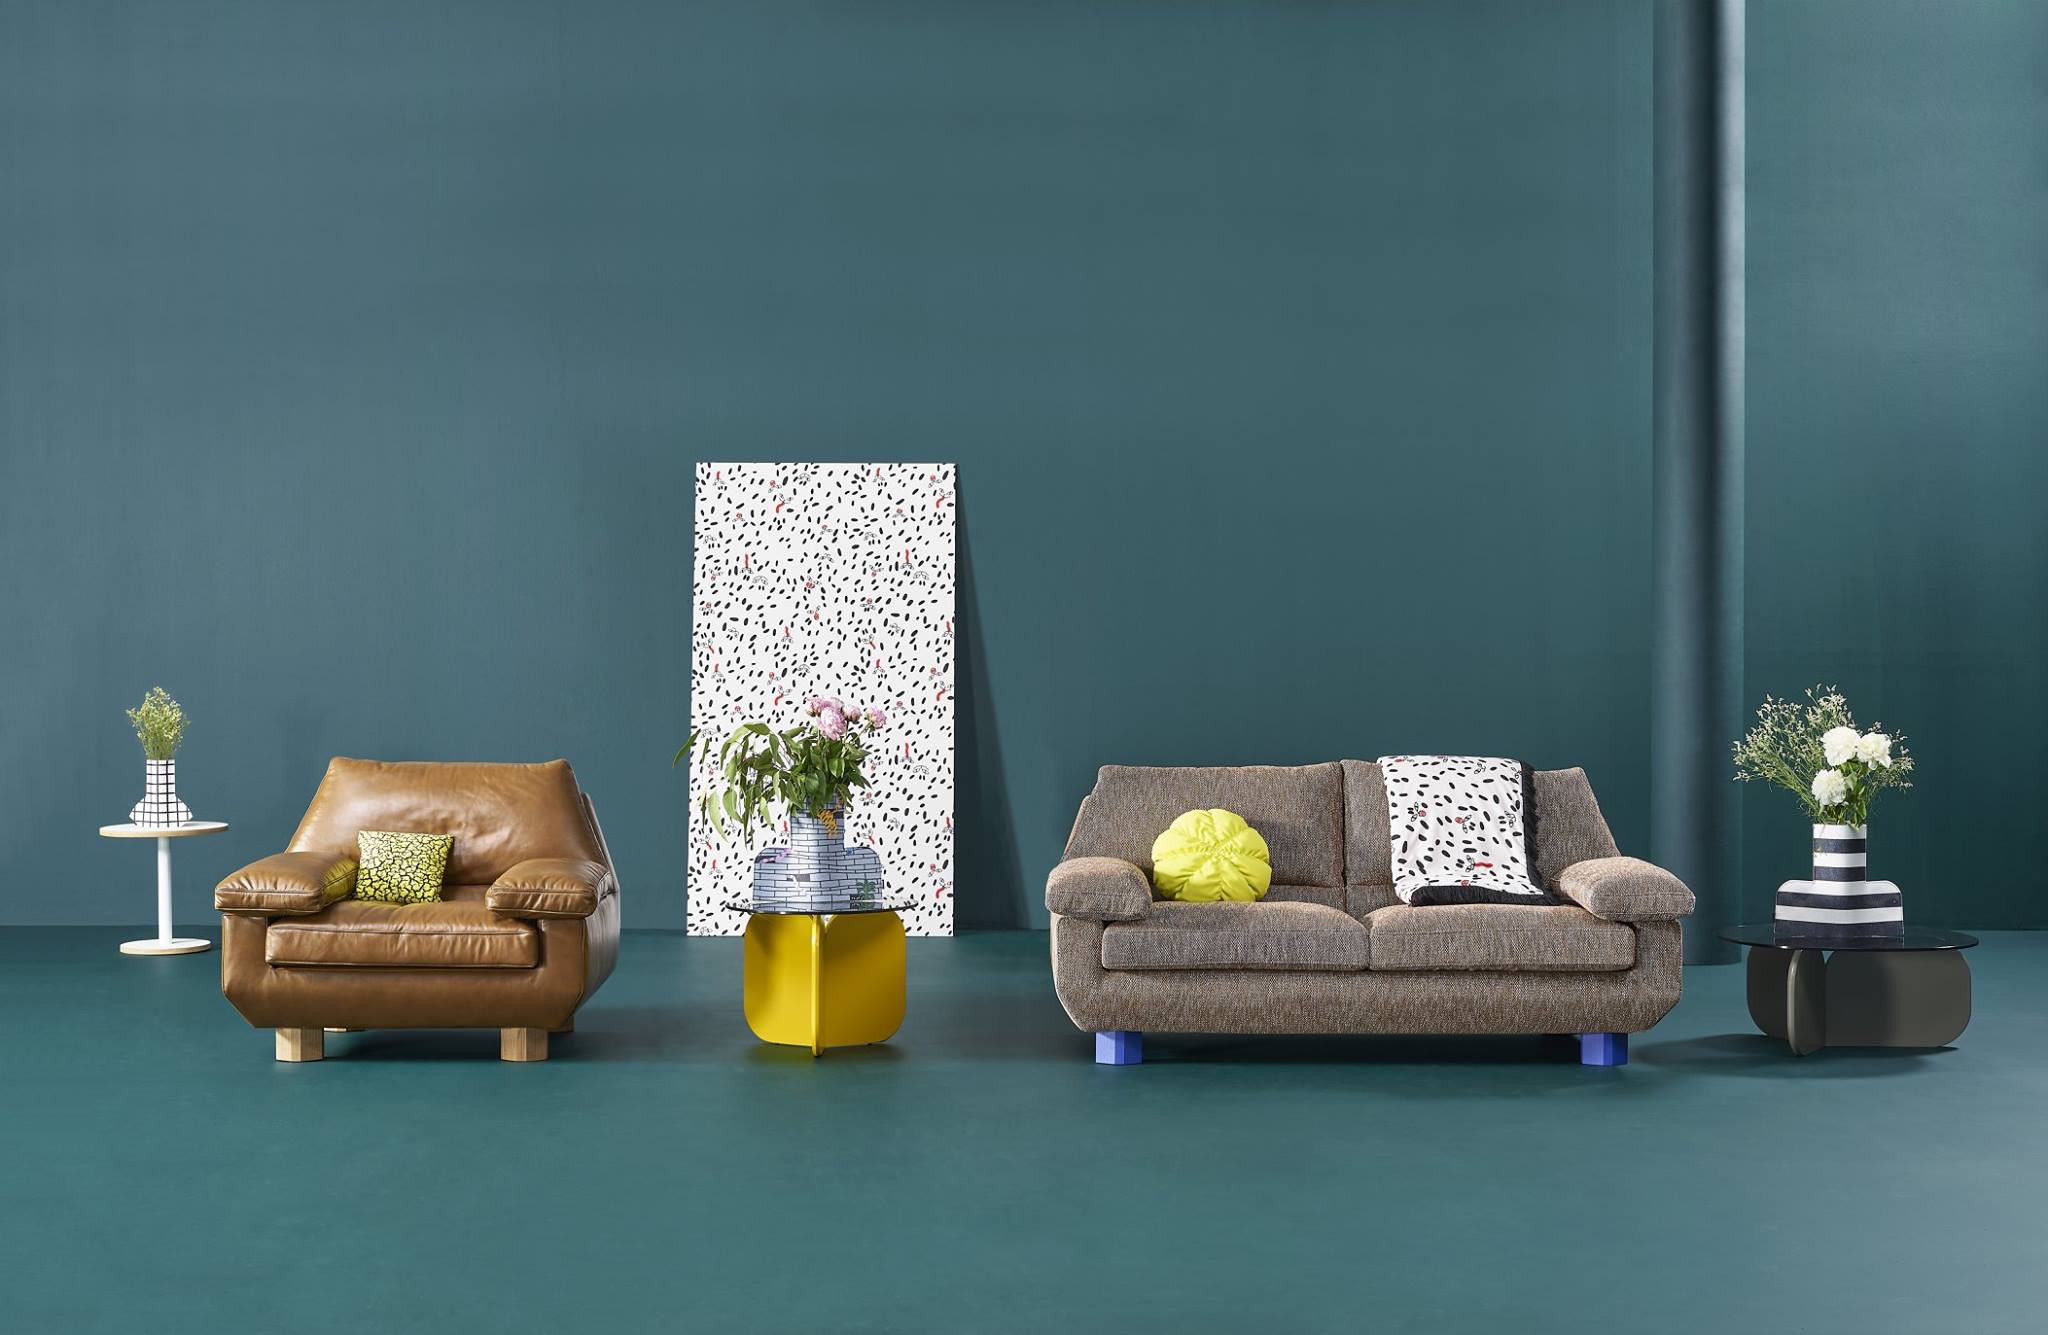 Sancal, DB sofa and seat